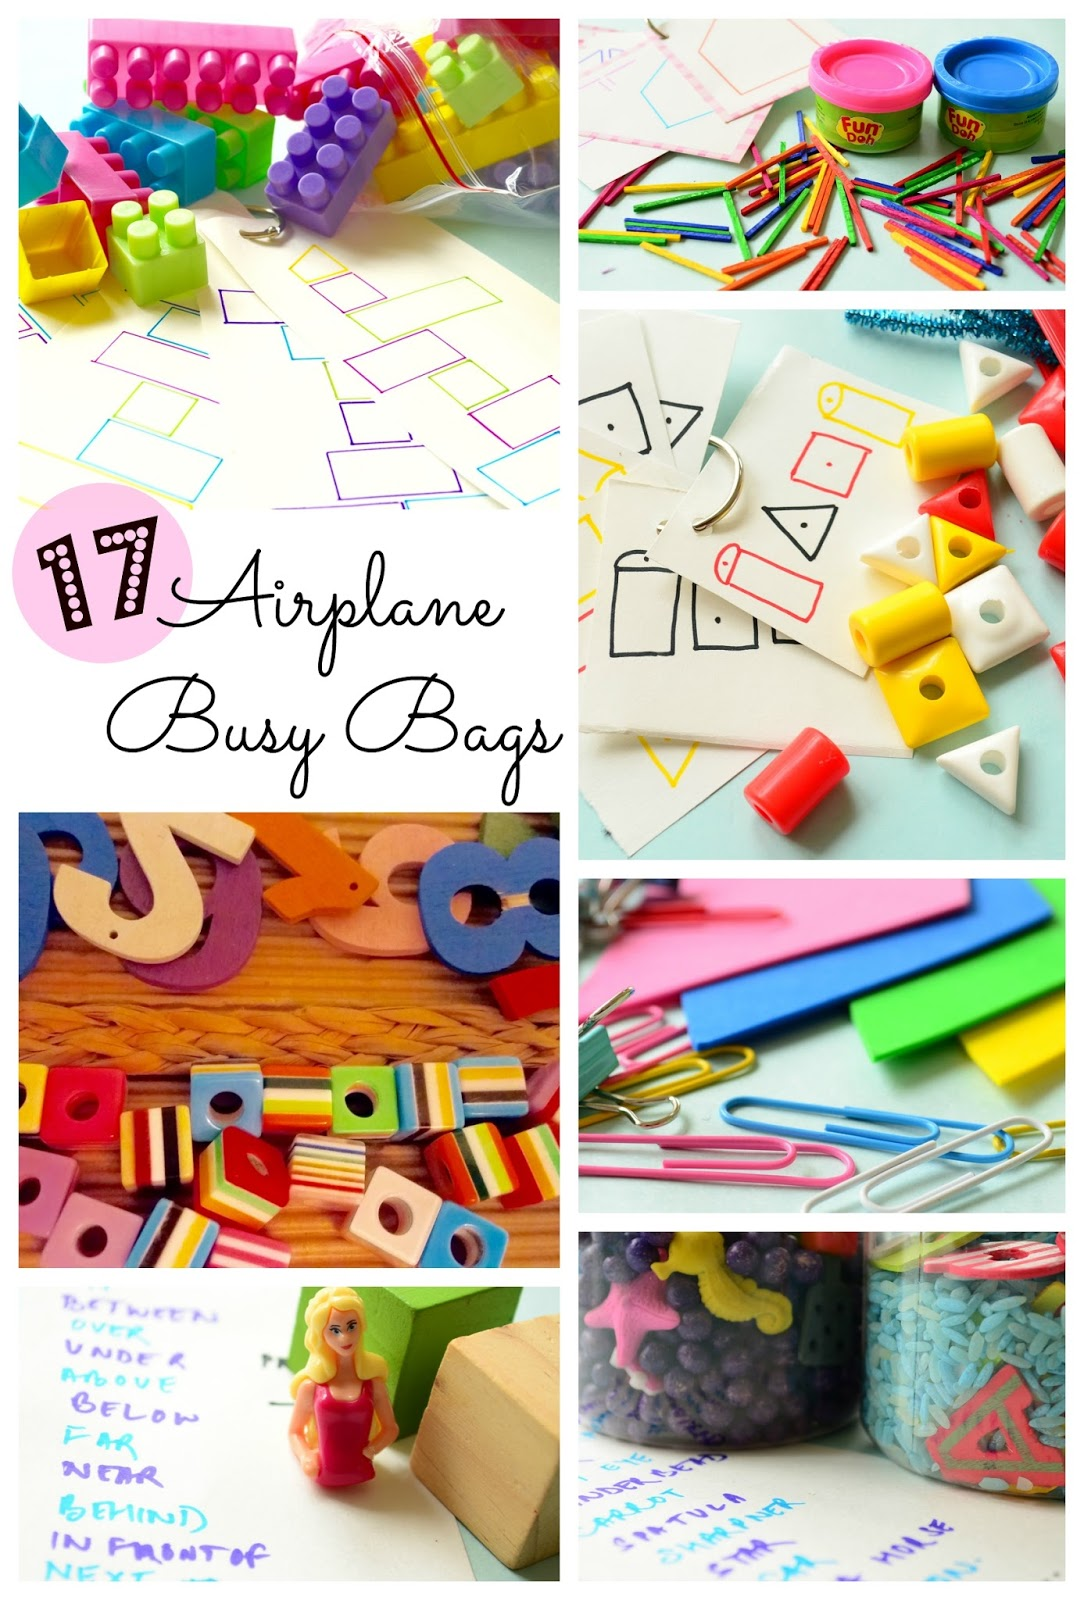 17 Busy Bags -- Perfect for Traveling and On the Go! from The Practical Mom